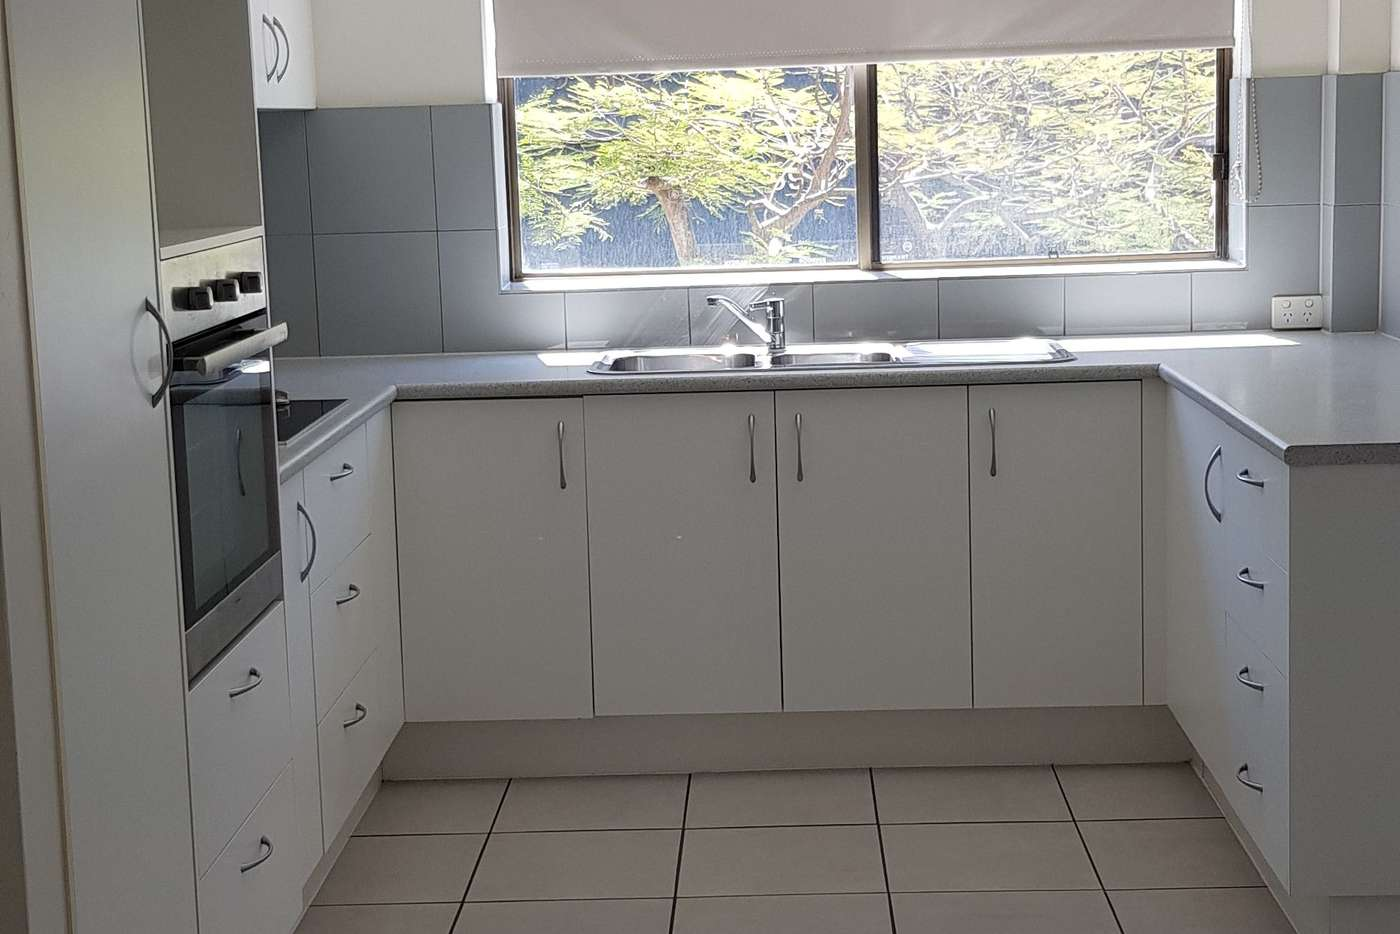 Main view of Homely unit listing, 1/60 Latham Street, Chermside QLD 4032